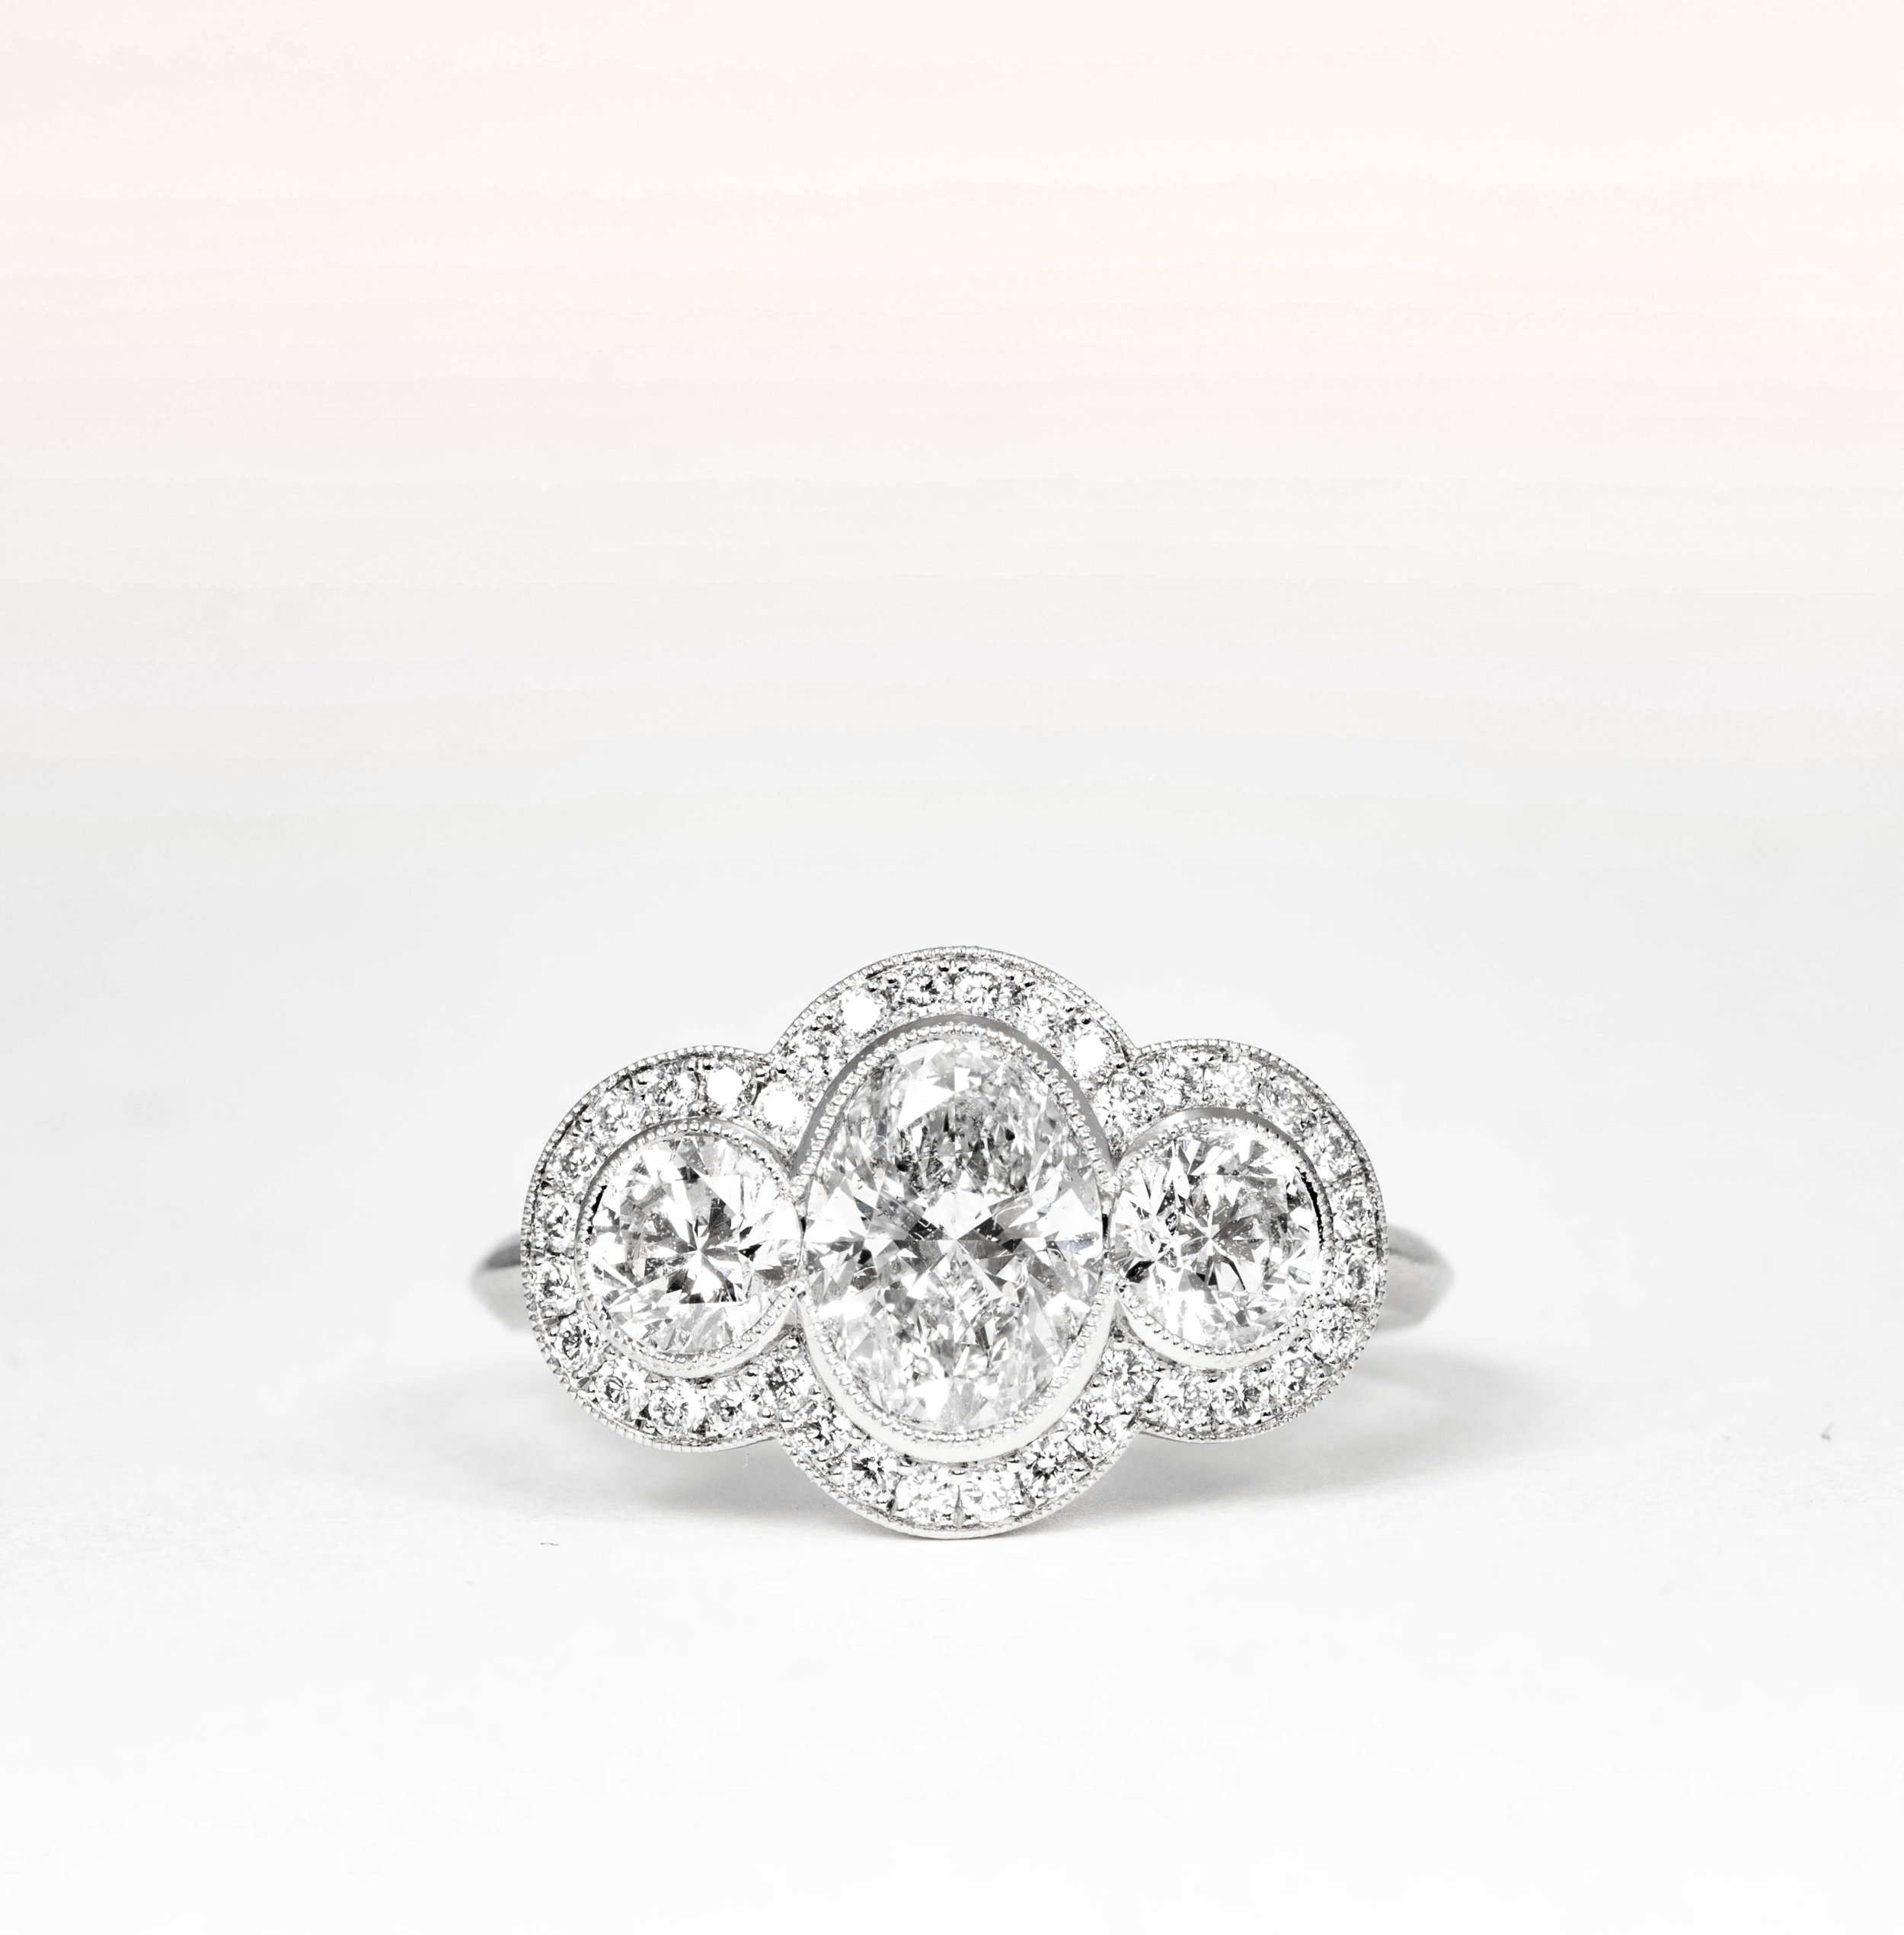 Copy of 1920's style oval diamond set triple cluster platinum ring. Made in Chichester, England.